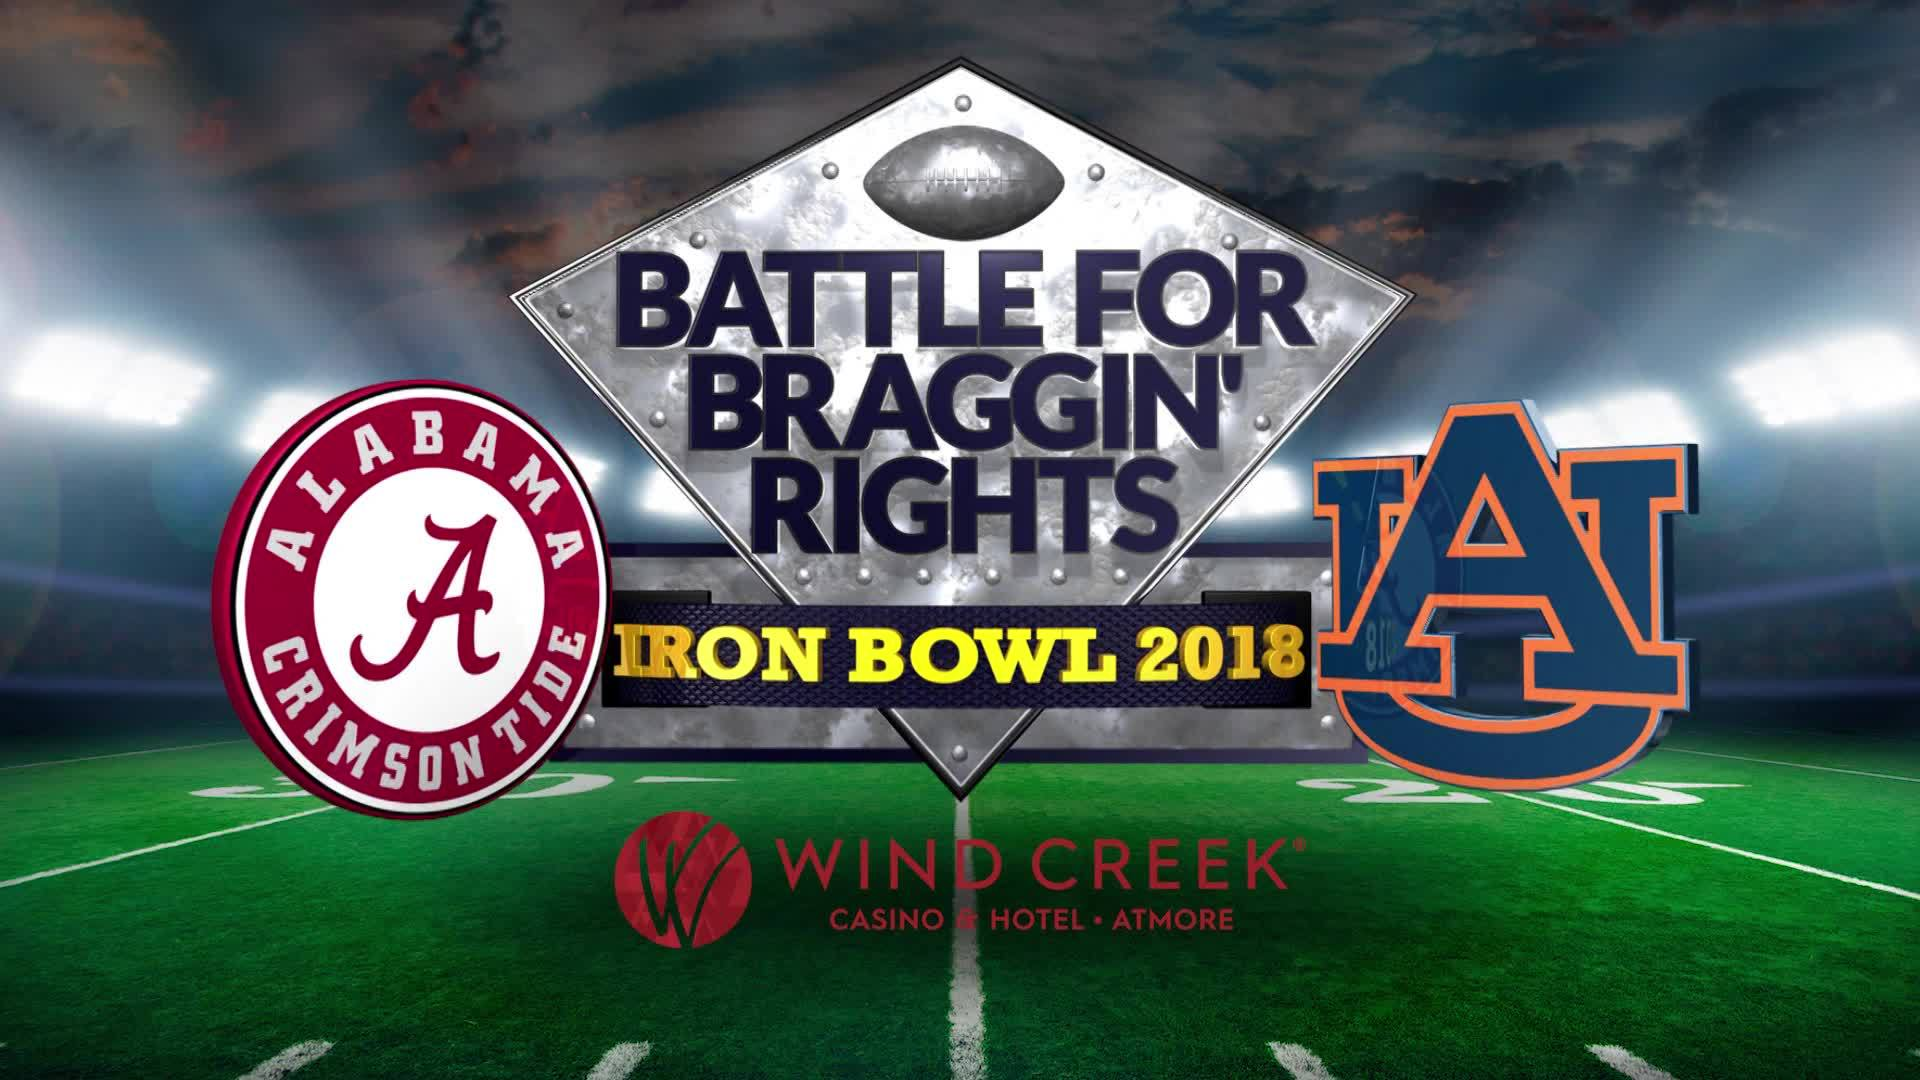 Iron Bowl Special: Battle for Braggin' Rights